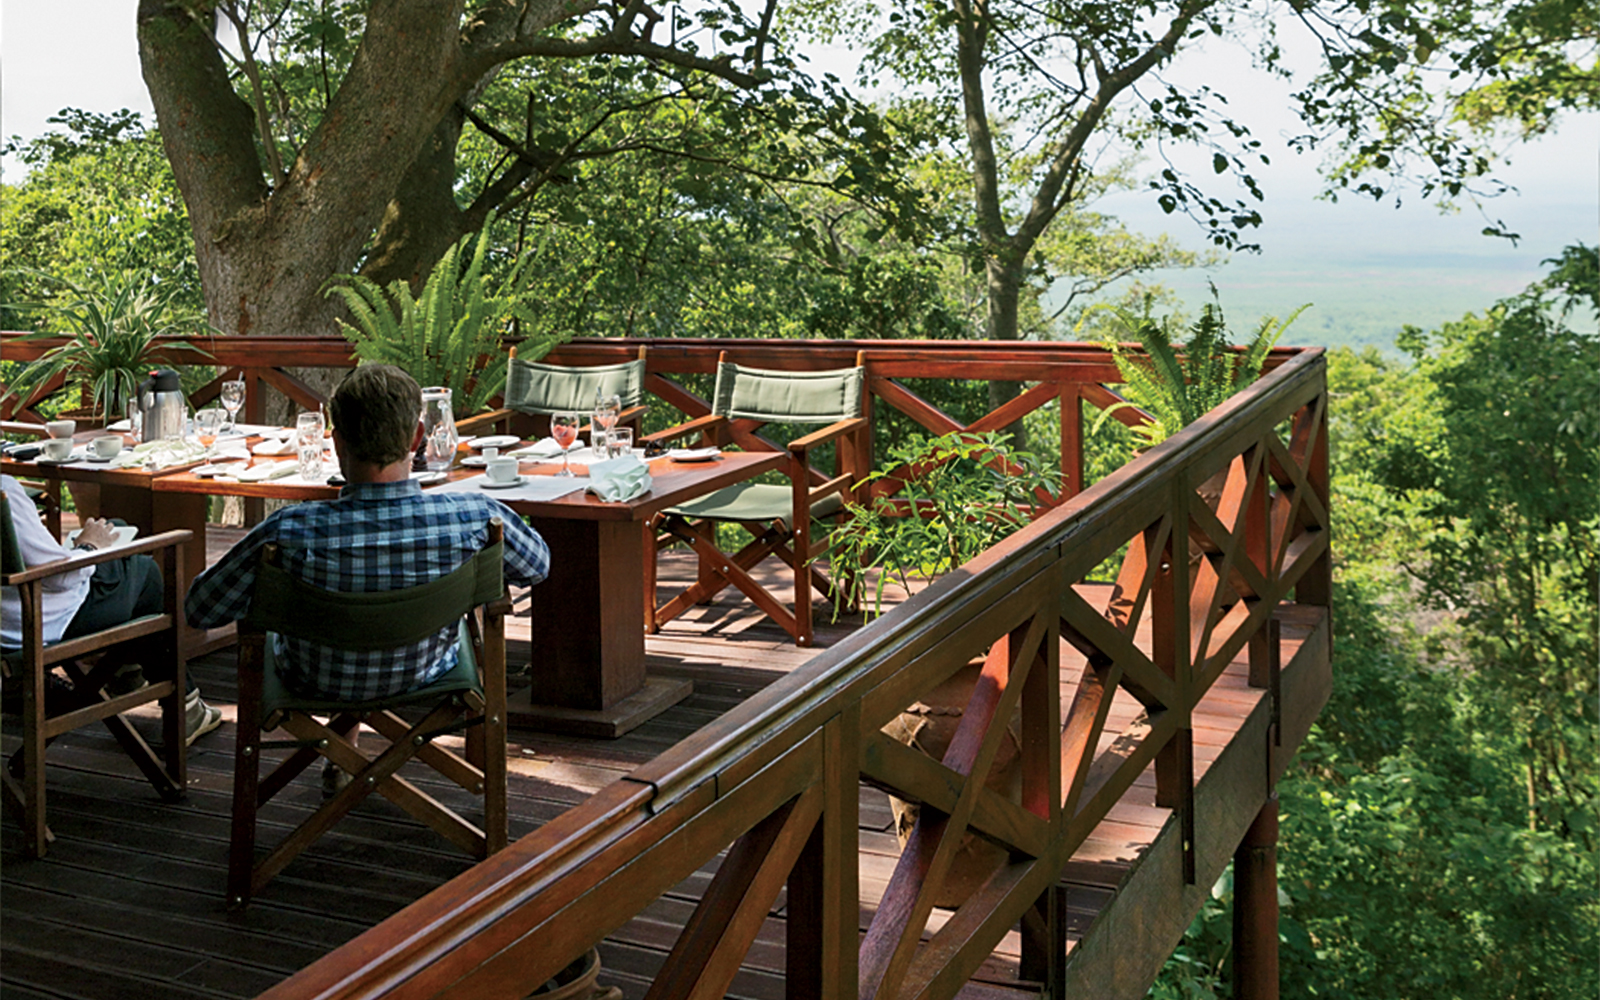 Lunch on the veranda at Mikeno Lodge